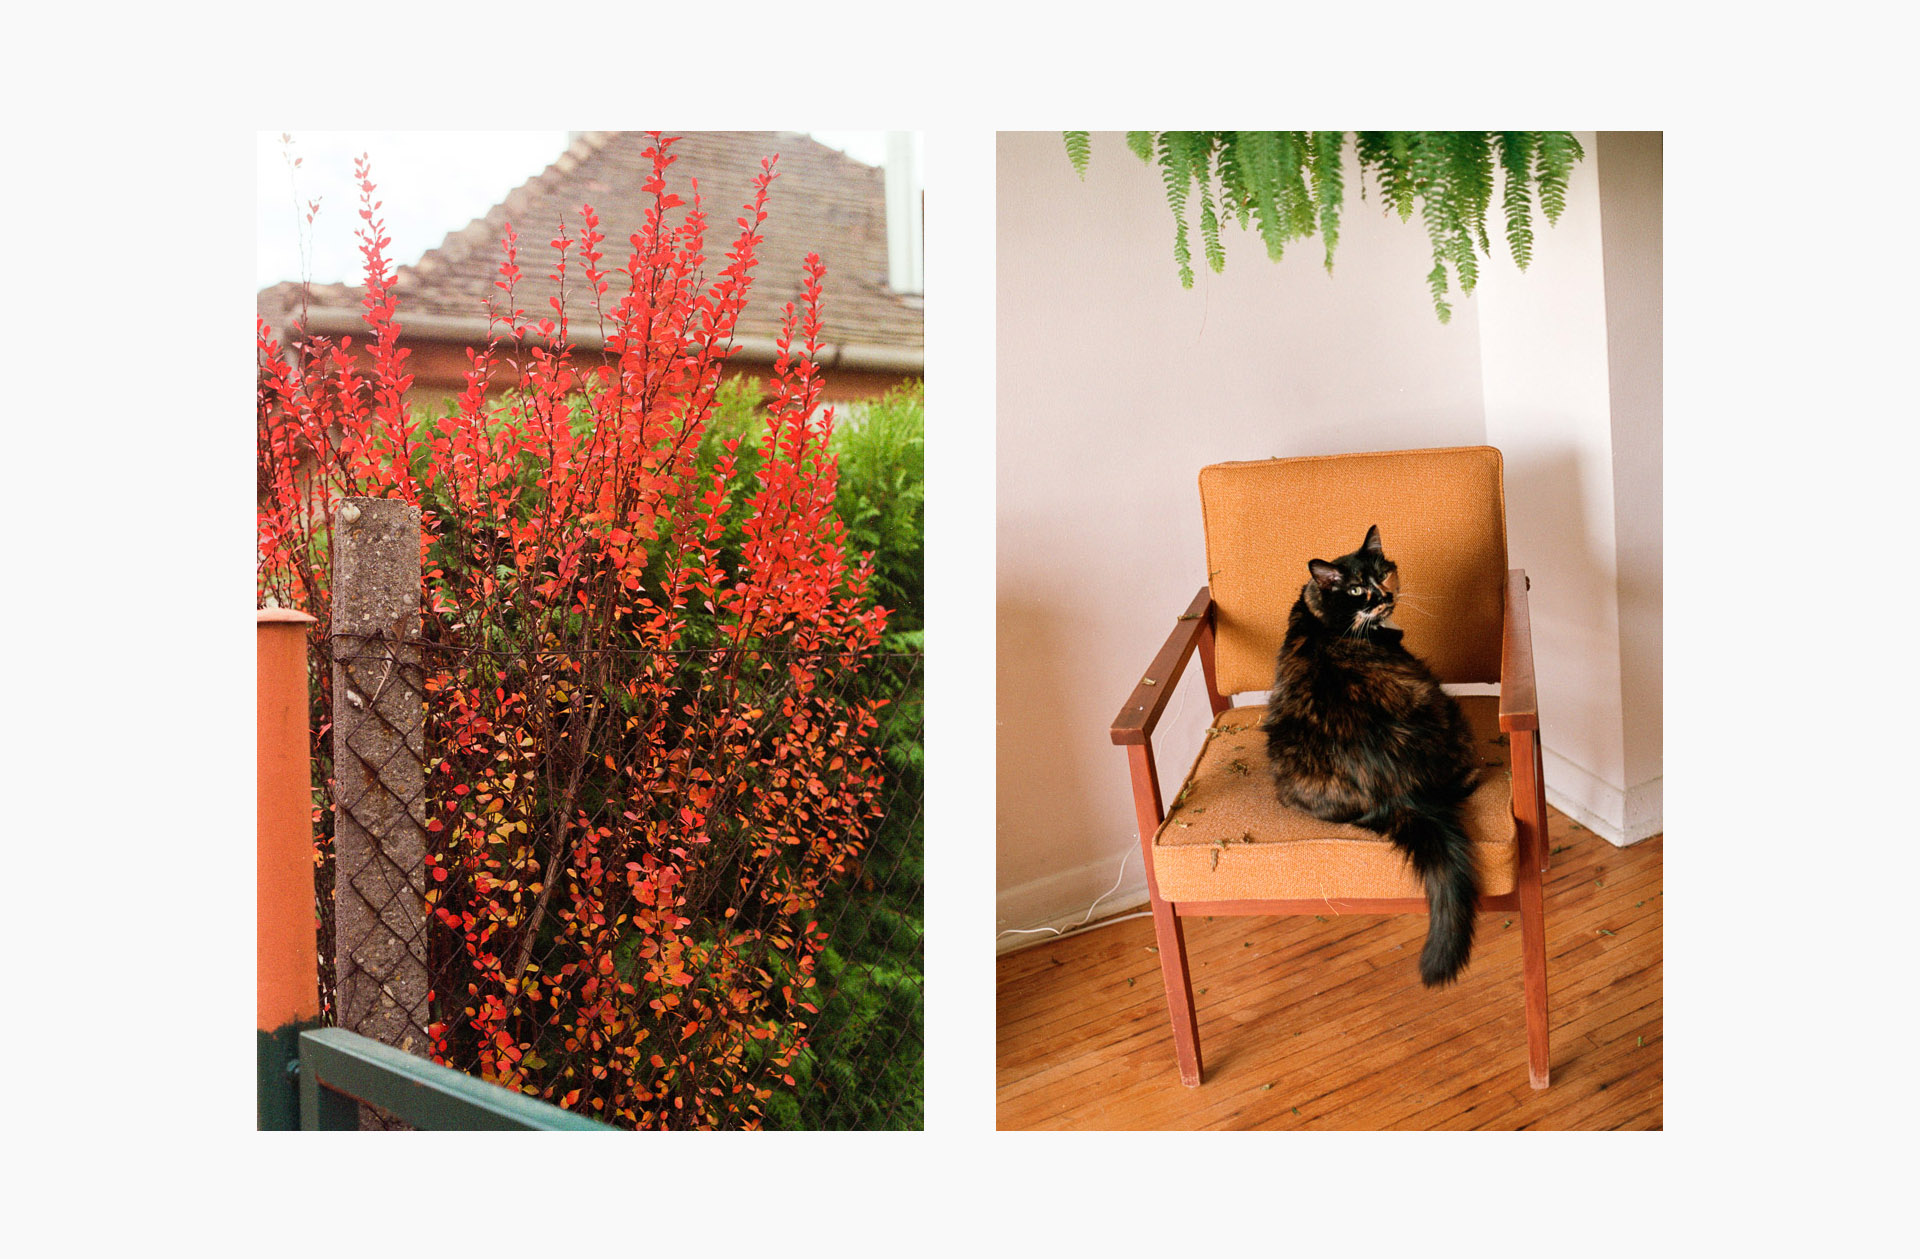 A diptych with an orange shrub on the left and a cat on an orange chair on the right.